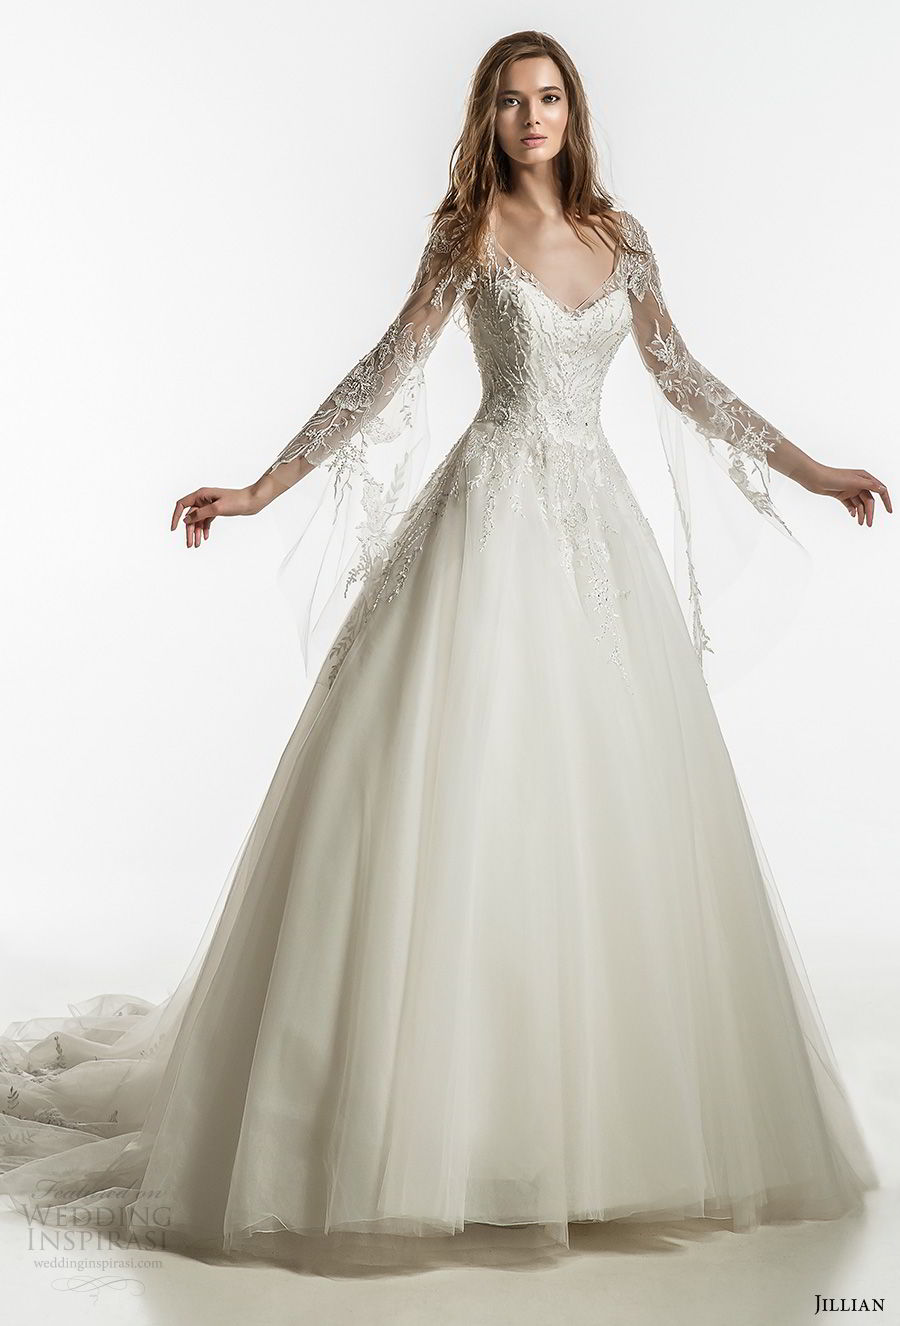 jillian 2018 bridal long sleeves sweetheart neckline heavily embellished bodice romantic fairytale a  line wedding dress open v back royal train (22) mv